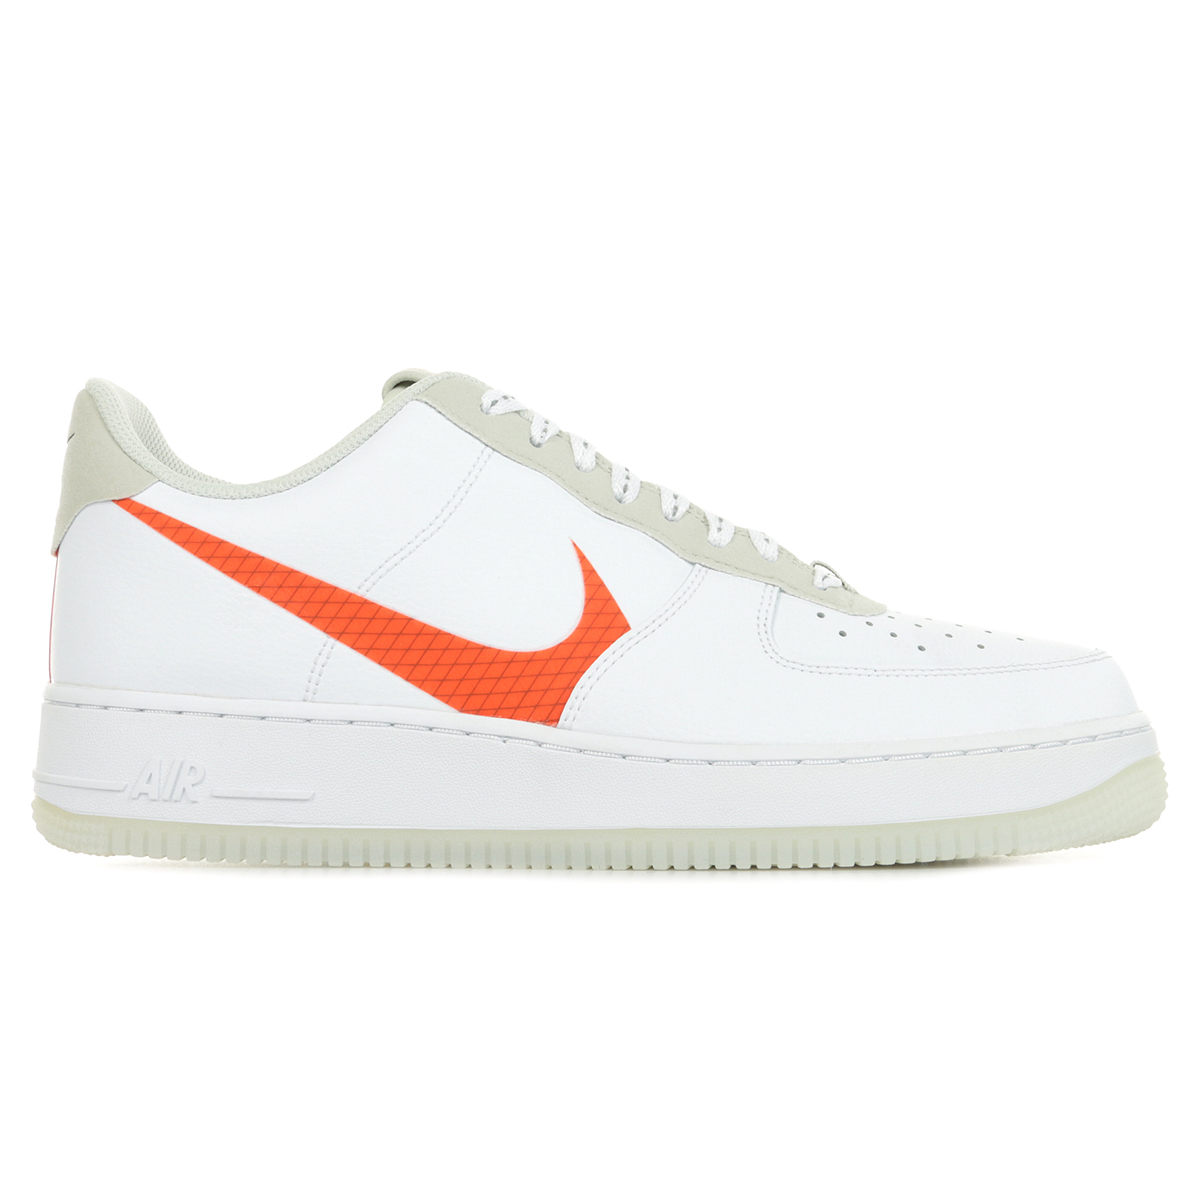 Nike Air Force 1 '07 LV8 3 CD0888100, Baskets mode homme